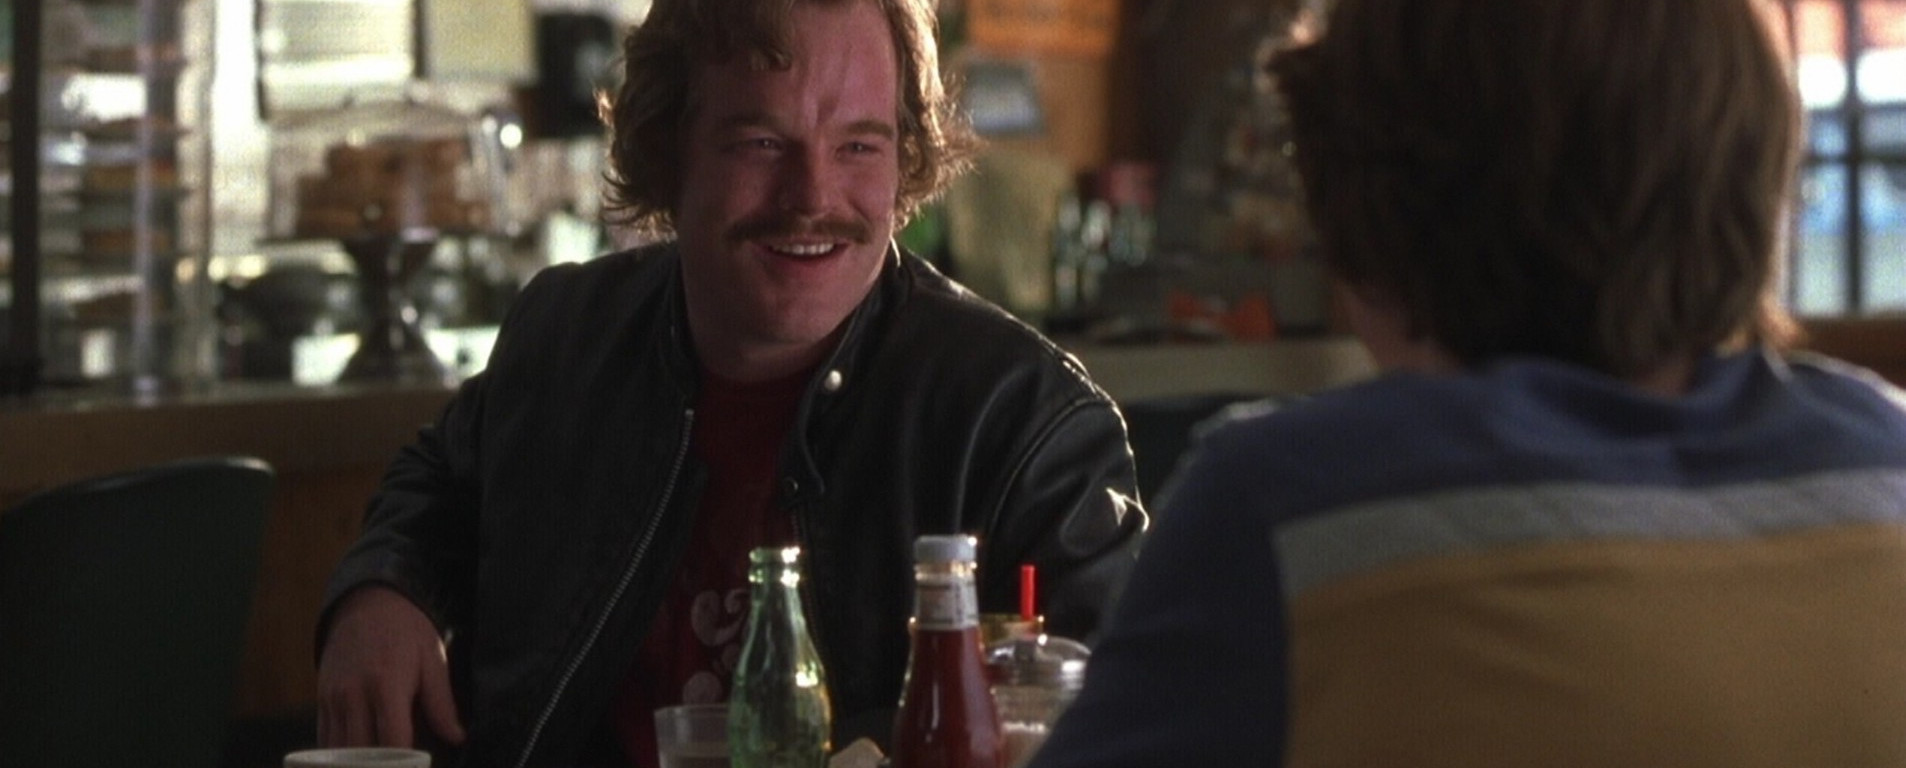 Lester Bangs, Almost Famous (2000)